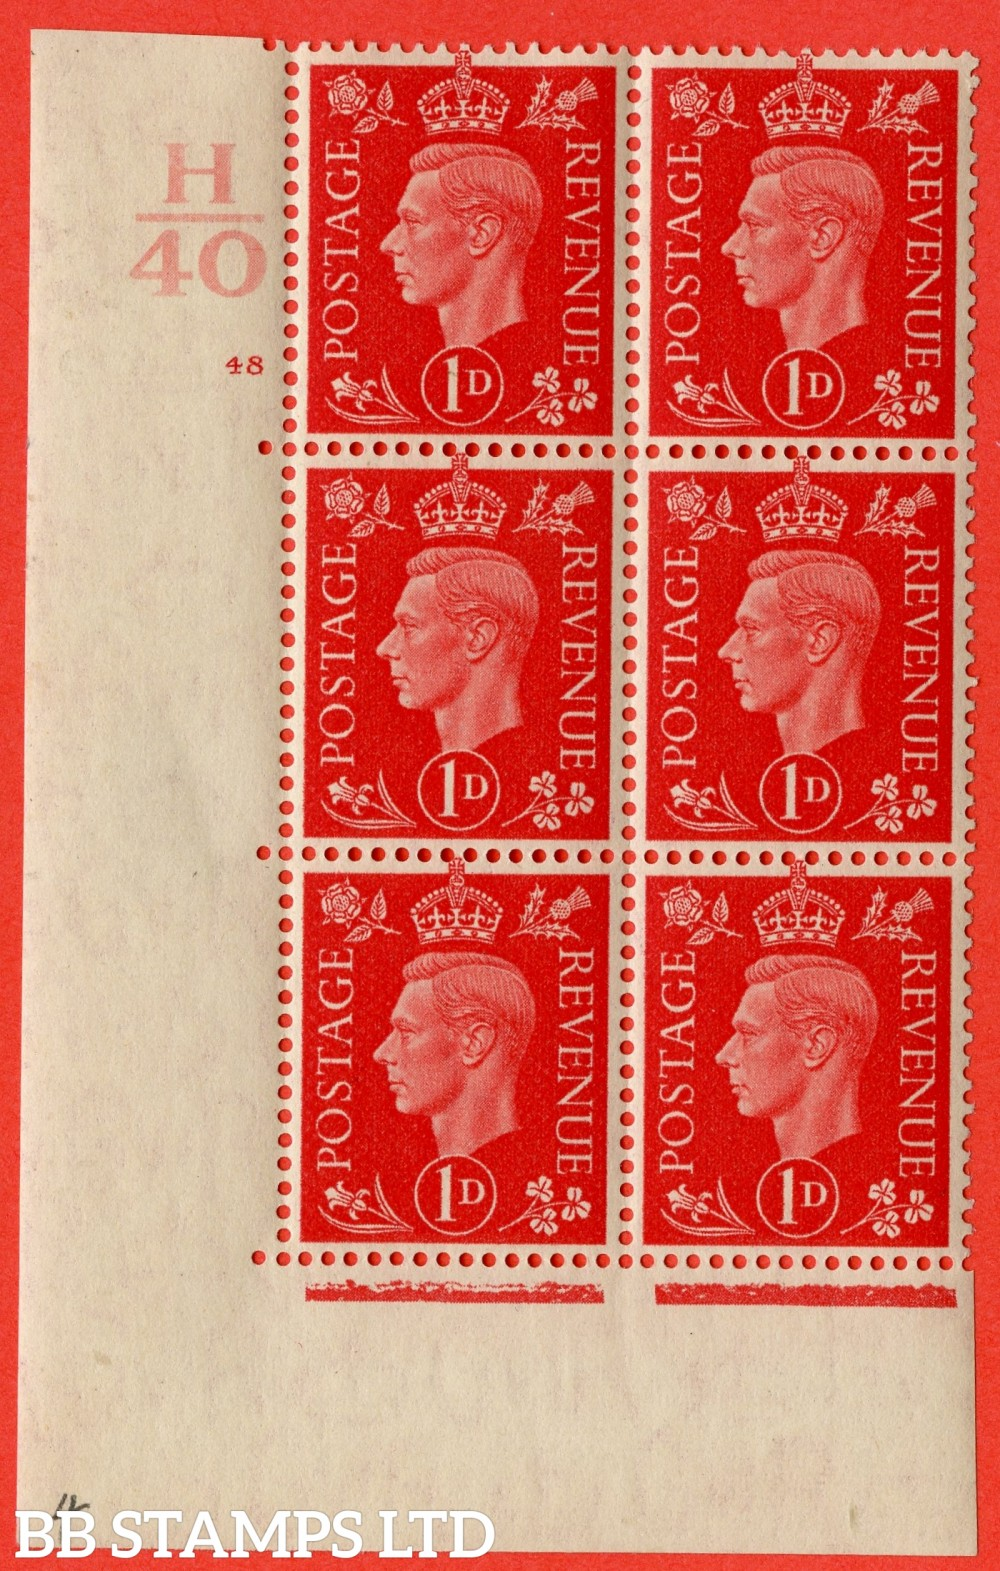 "SG. 463. Q4. 1d Scarlet. A very fine lightly mounted mint "" Control H40 cylinder 48 no dot "" block of 6 with perf type 5 E/I with marginal rule."